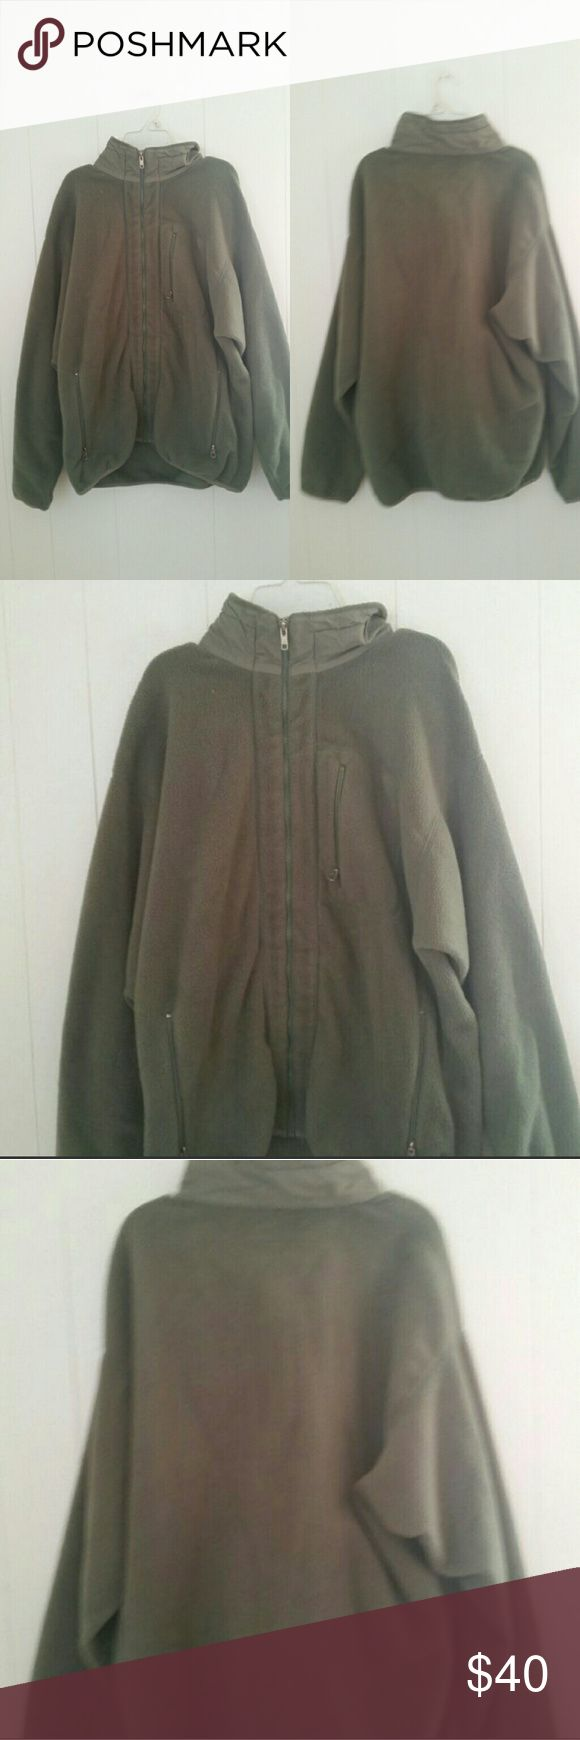 Mens Patagonia Fleece Jacket Size - L Brand - Patagonia Color - Olive Green  MSRP - $240 100% polyester   Only flaw are tags are ripped as shown in 3rd photo jacket itself is in great used condition Patagonia Jackets & Coats Lightweight & Shirt Jackets